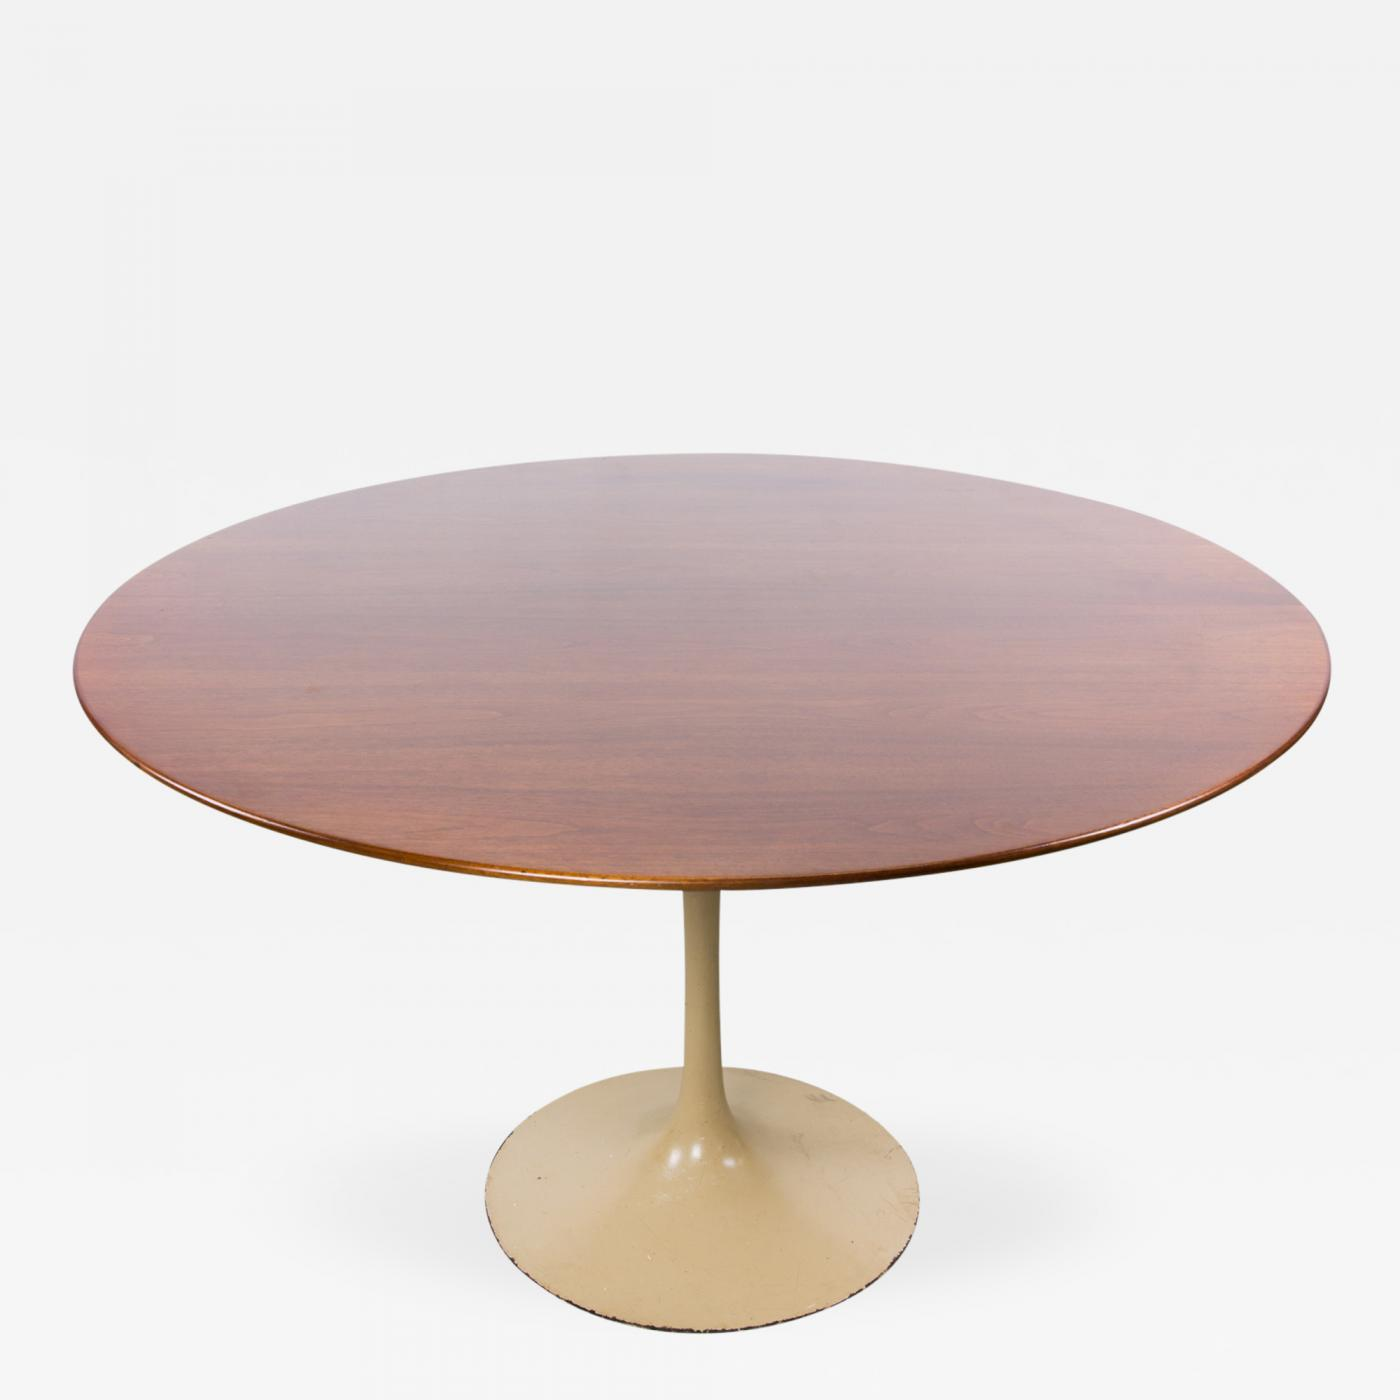 Eero Saarinen Objects And Furniture Design